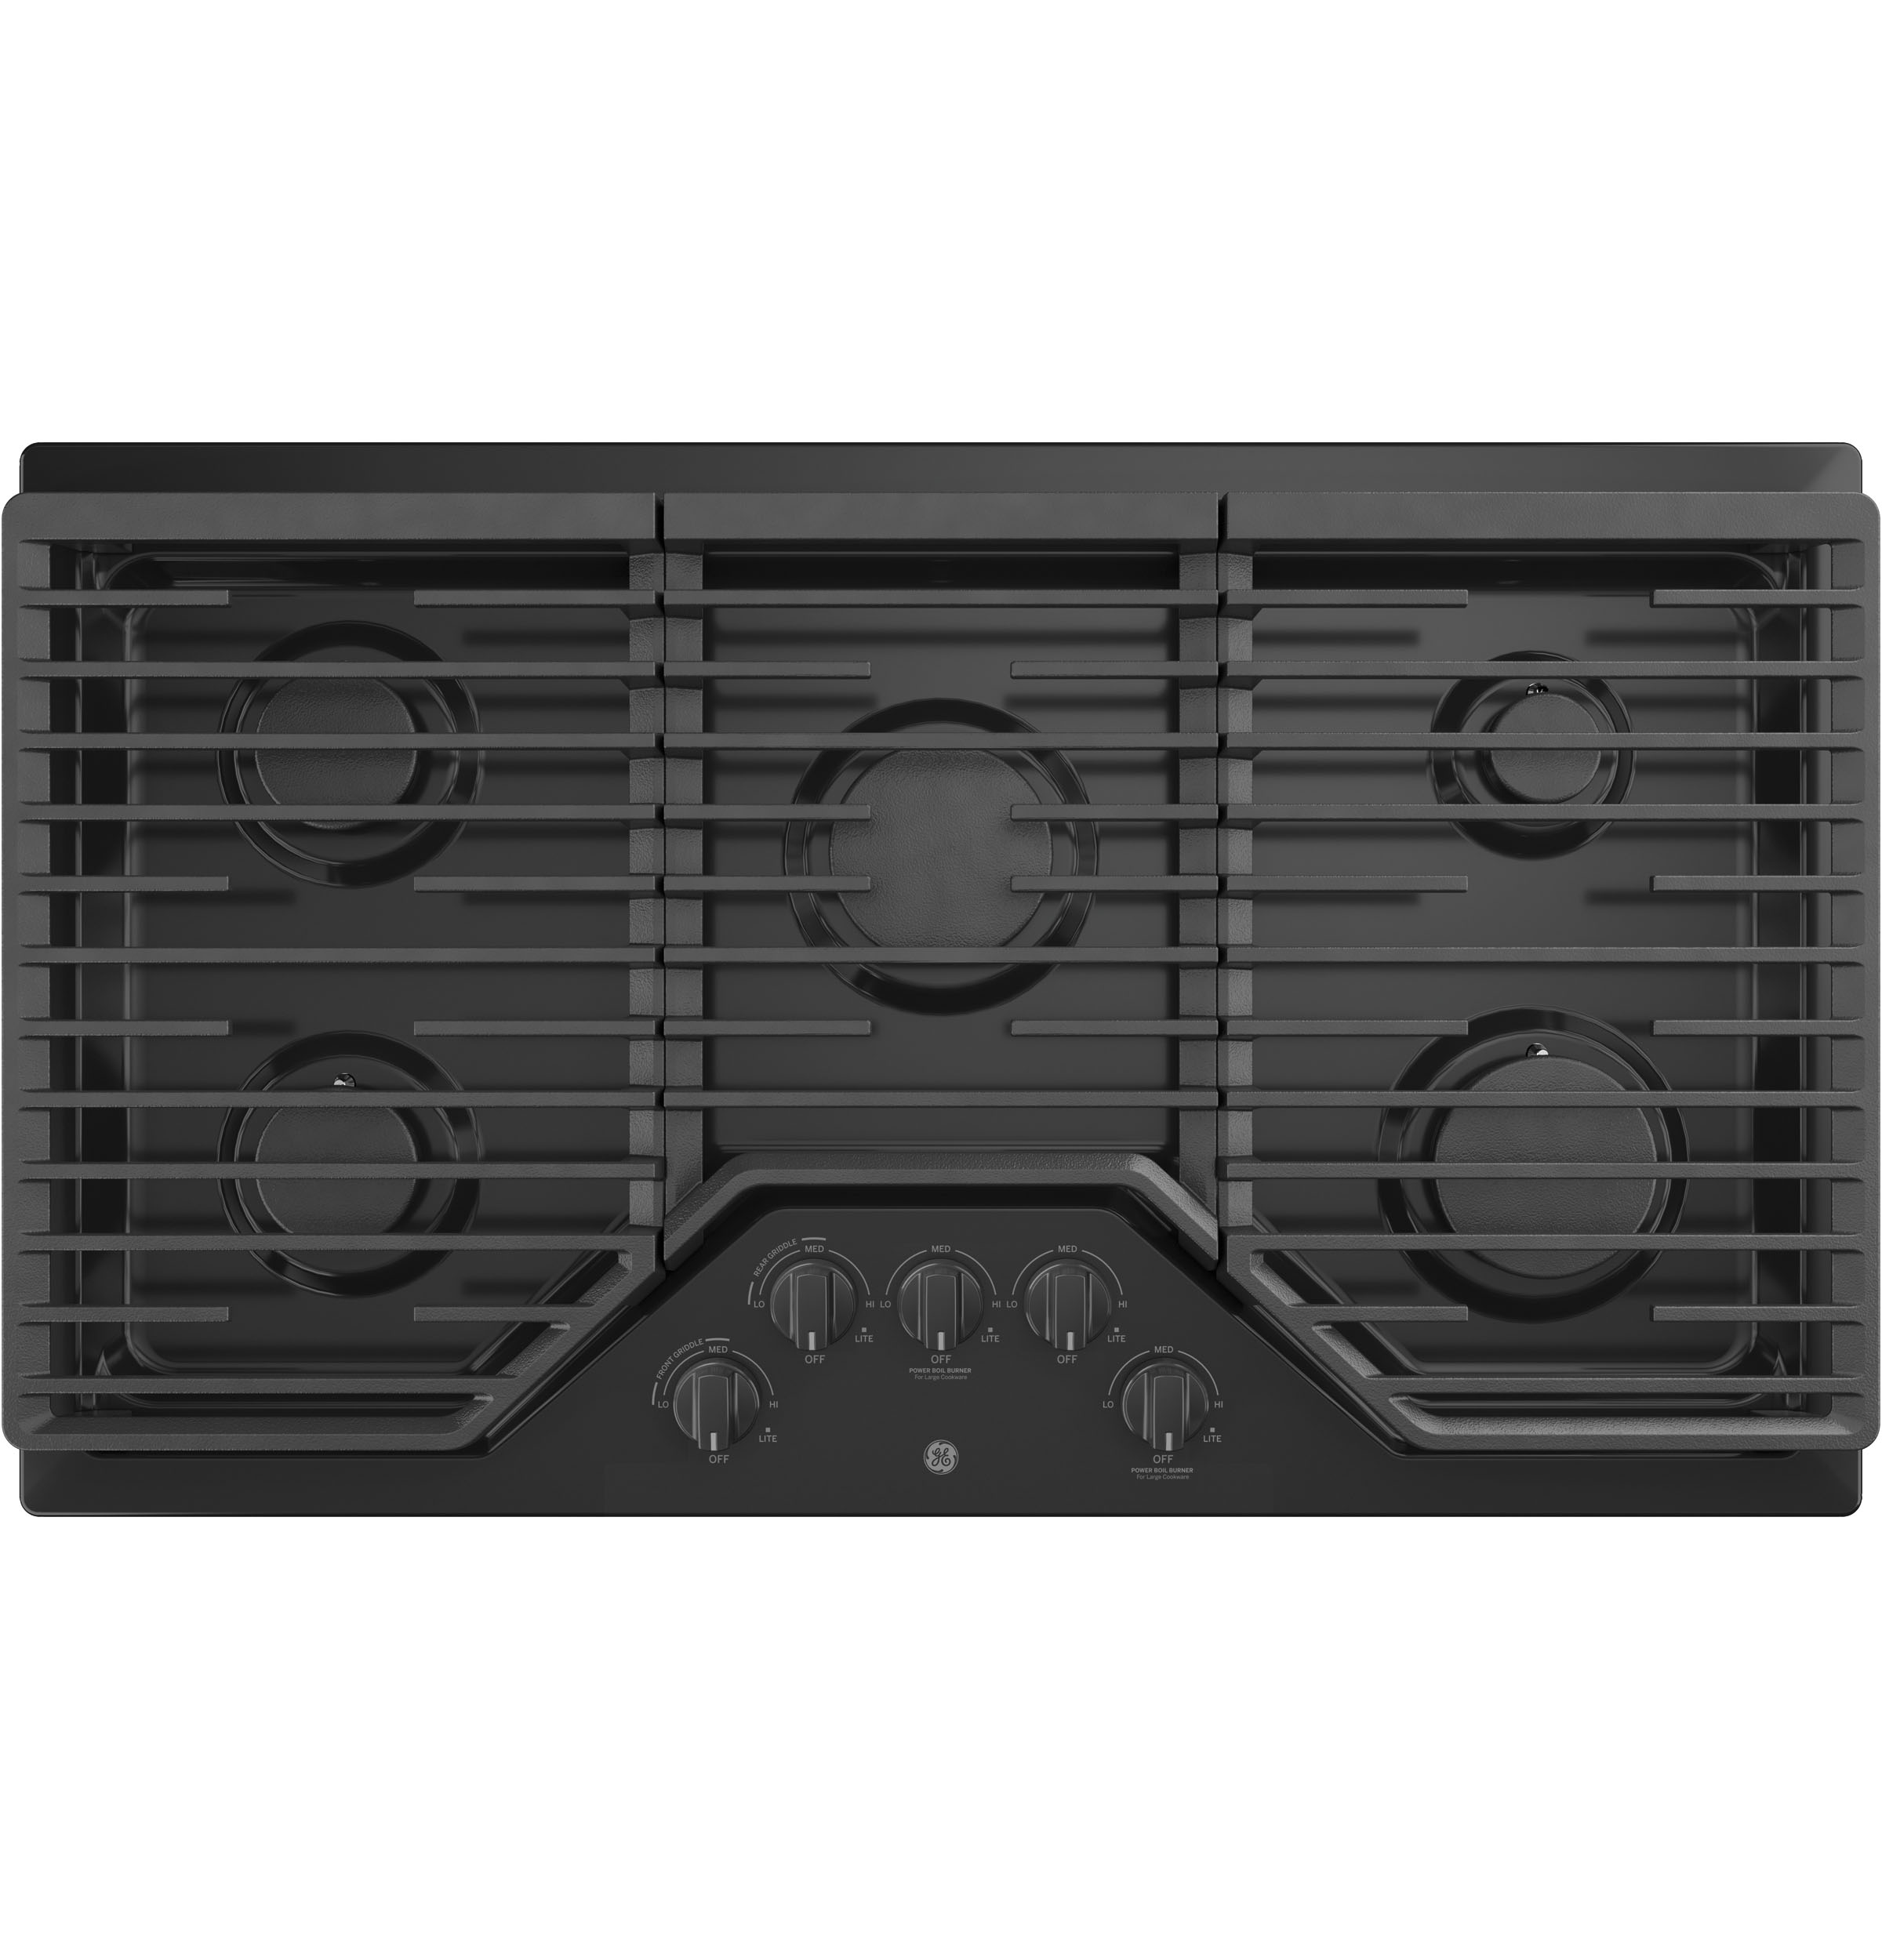 "GE GE® 36"" Built-In Gas Cooktop with 5 Burners and Dishwasher Safe Grates"